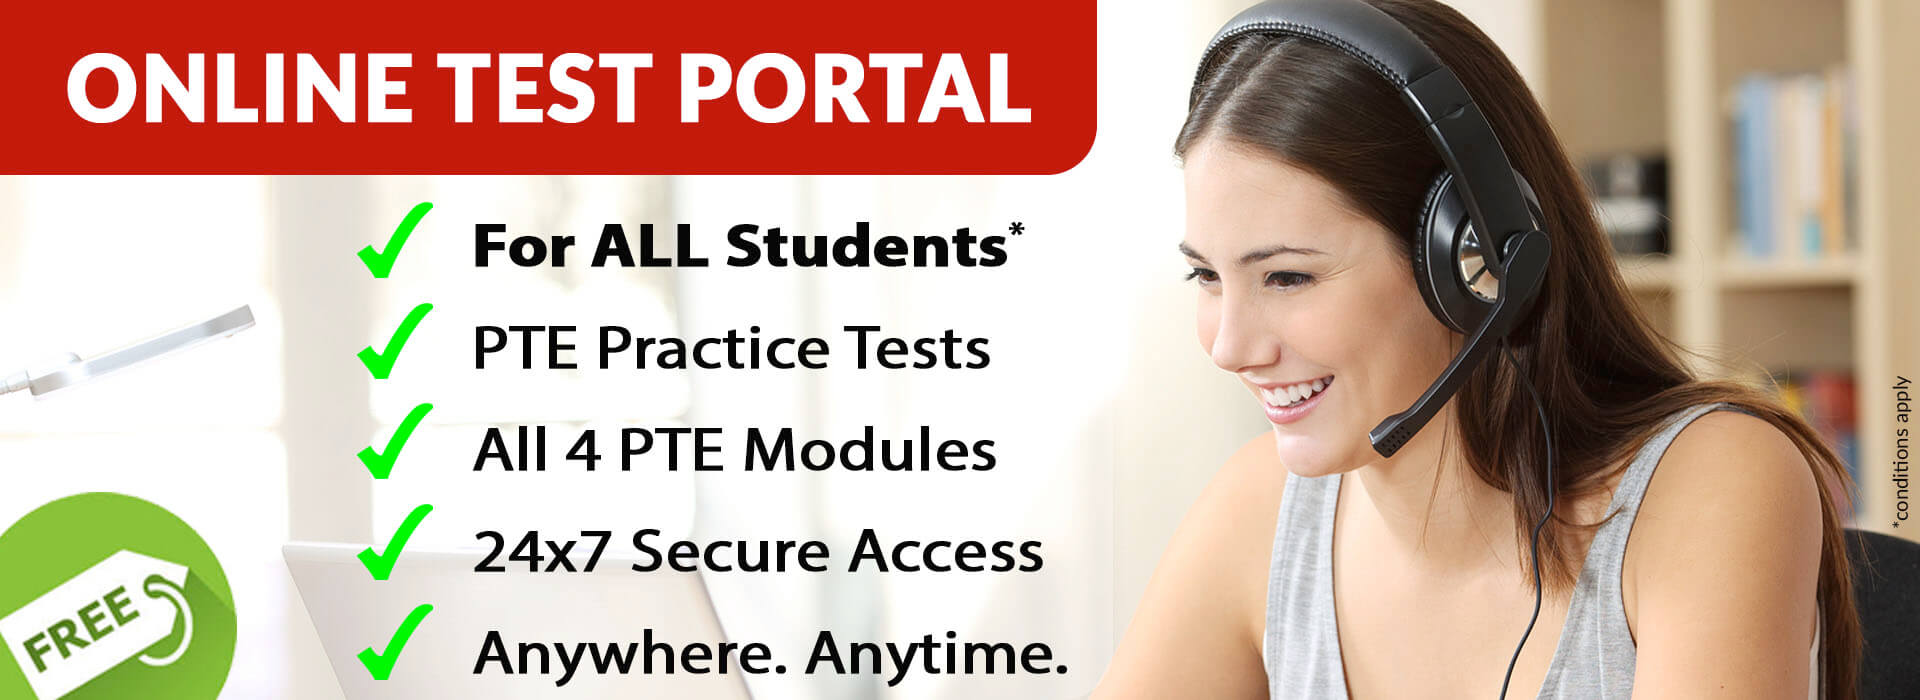 PTE Practice Test Online Portal. FREE for ALL Sydney PTE Institute Students